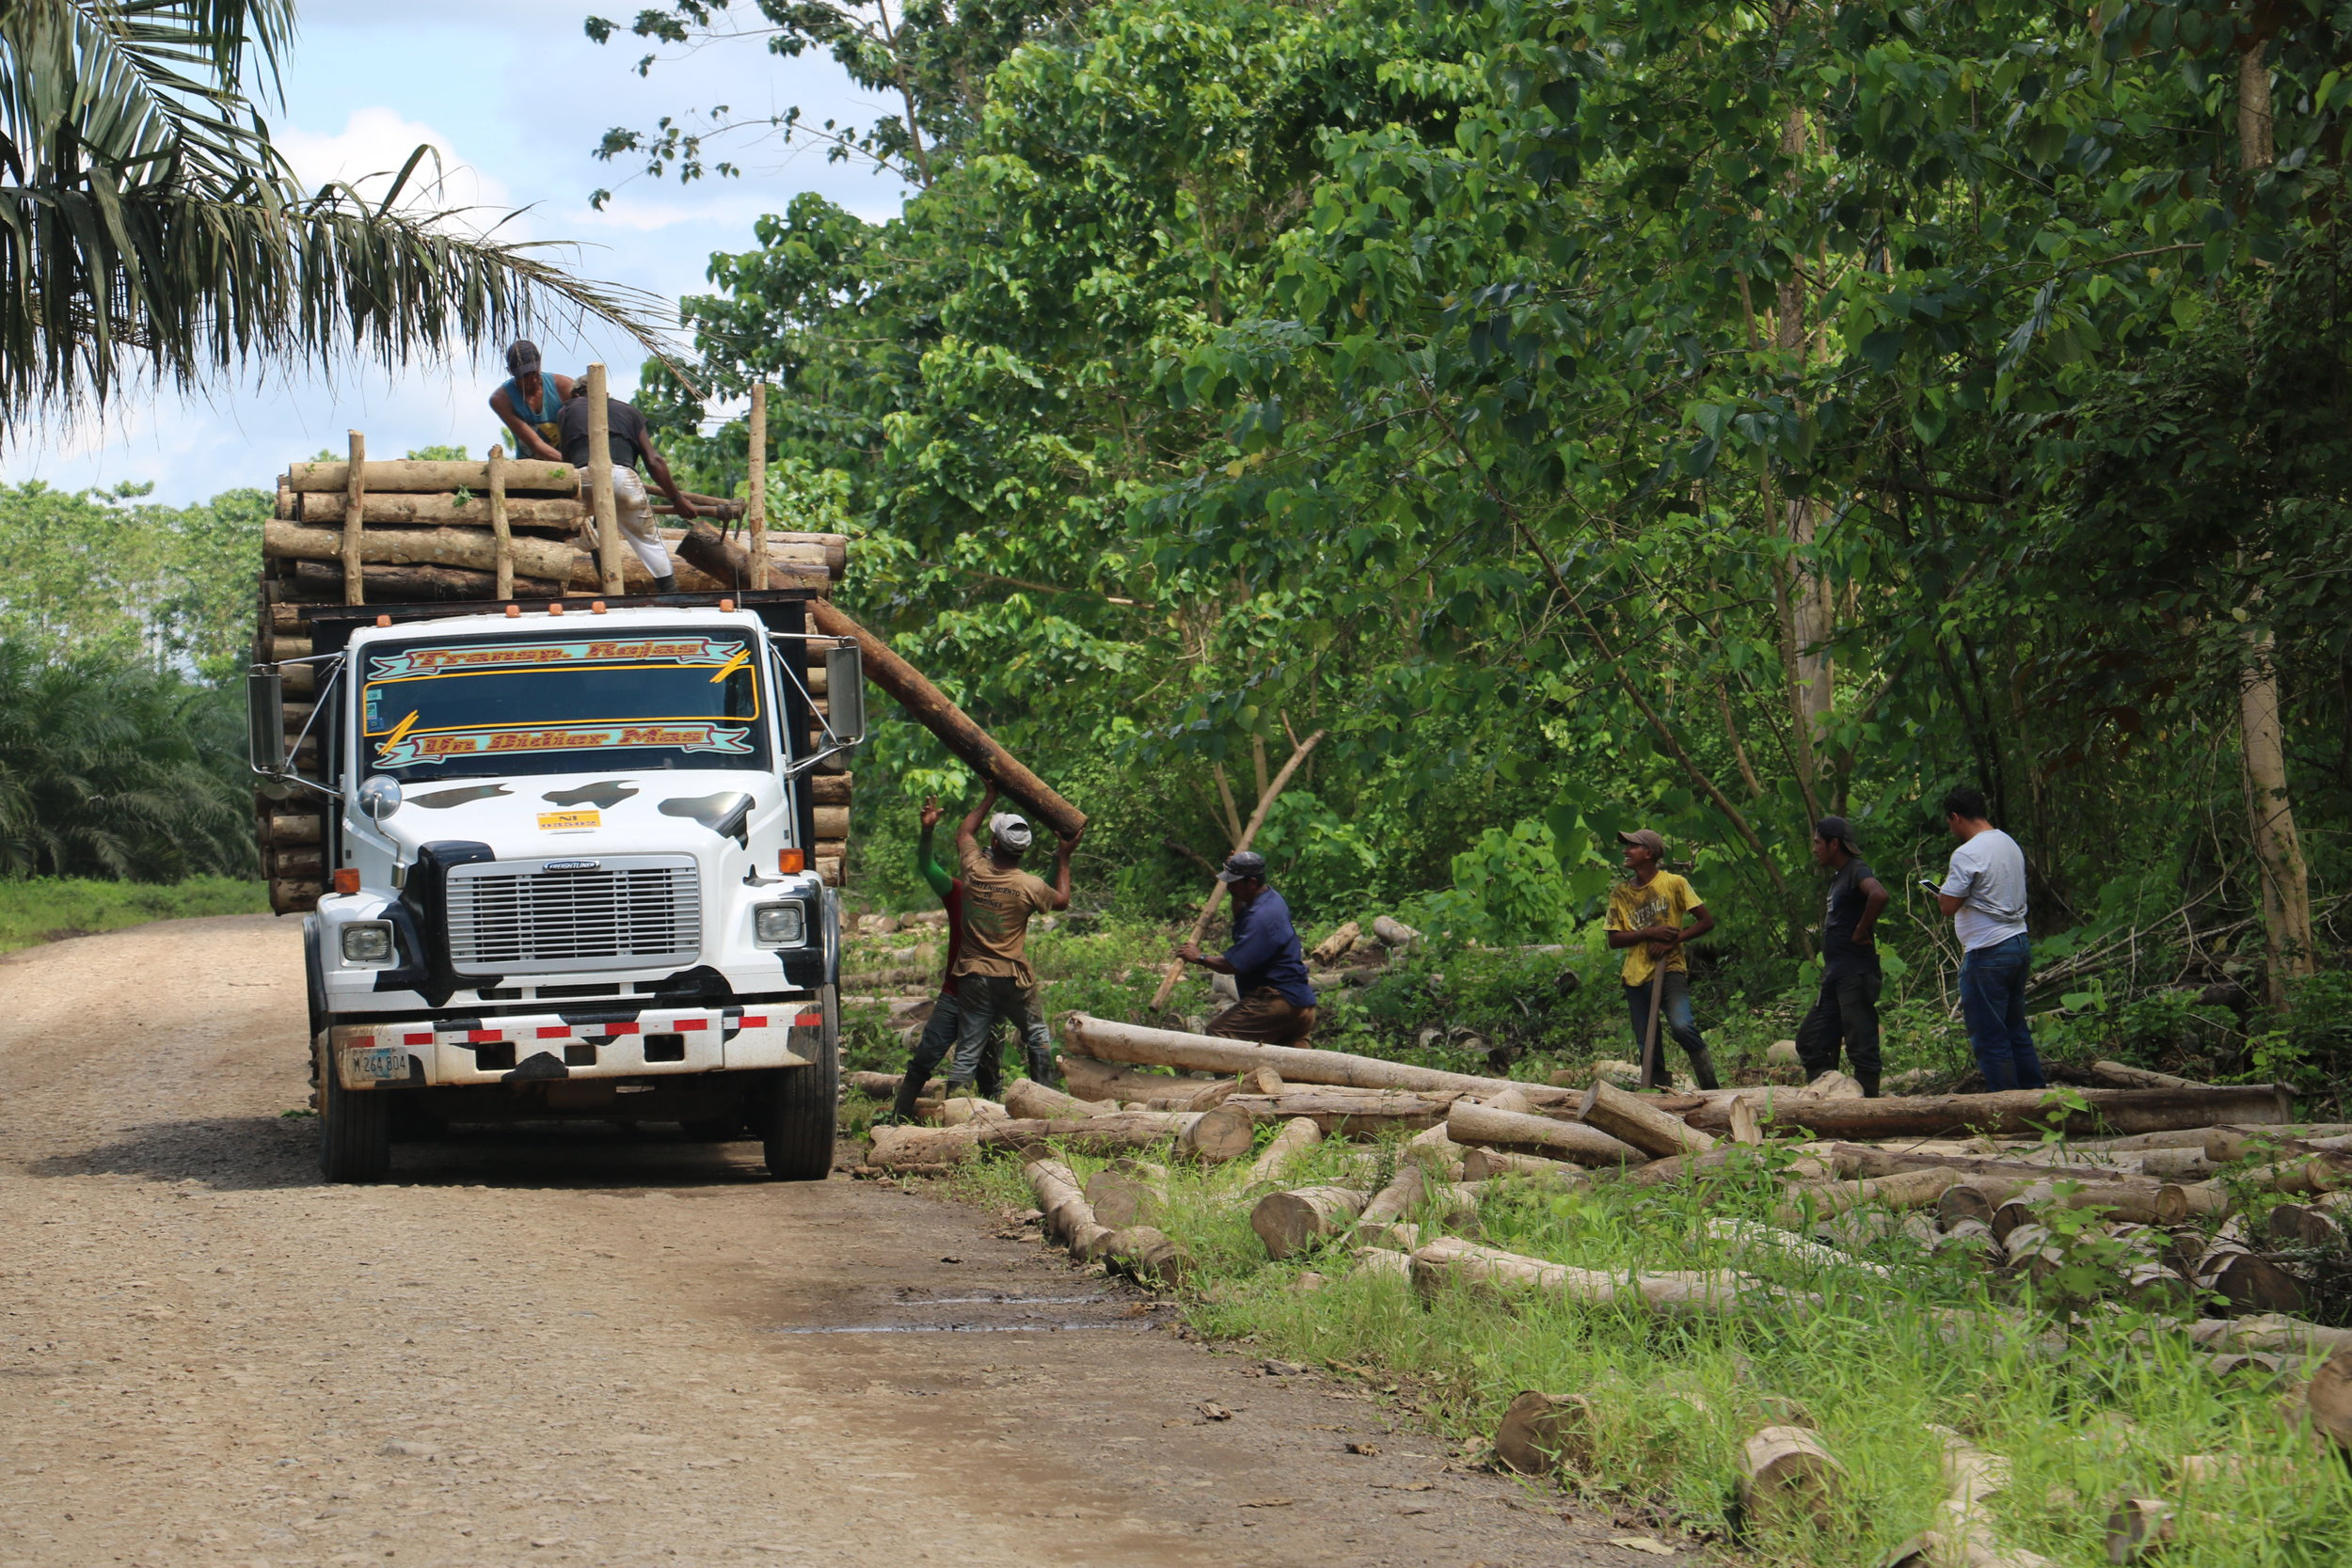 Laborers loading up Gmelina just outside the borders of the Reserve